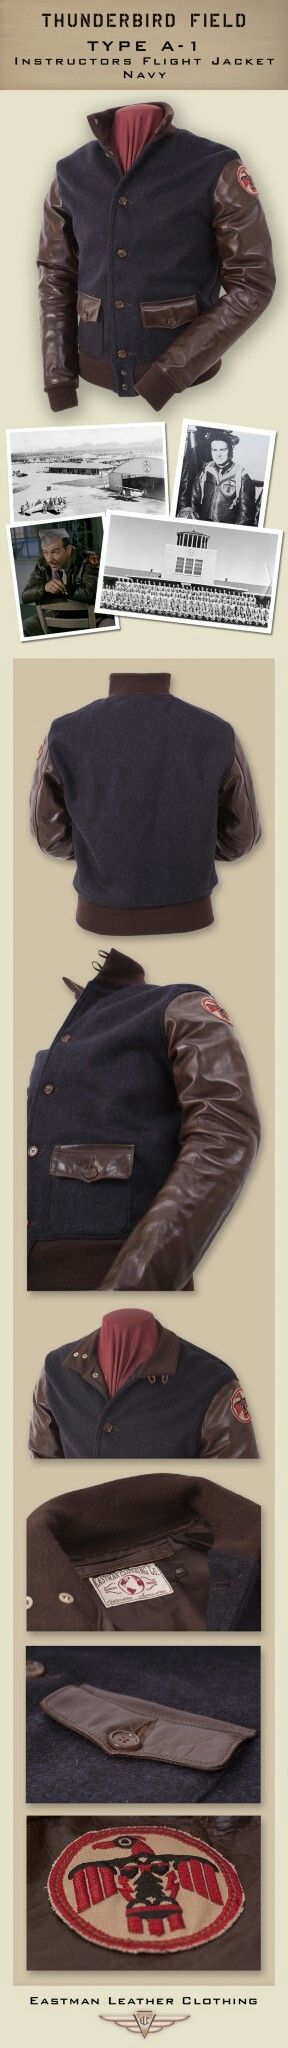 Thunderbird Field Instructor's Jacket- Eastman Leather